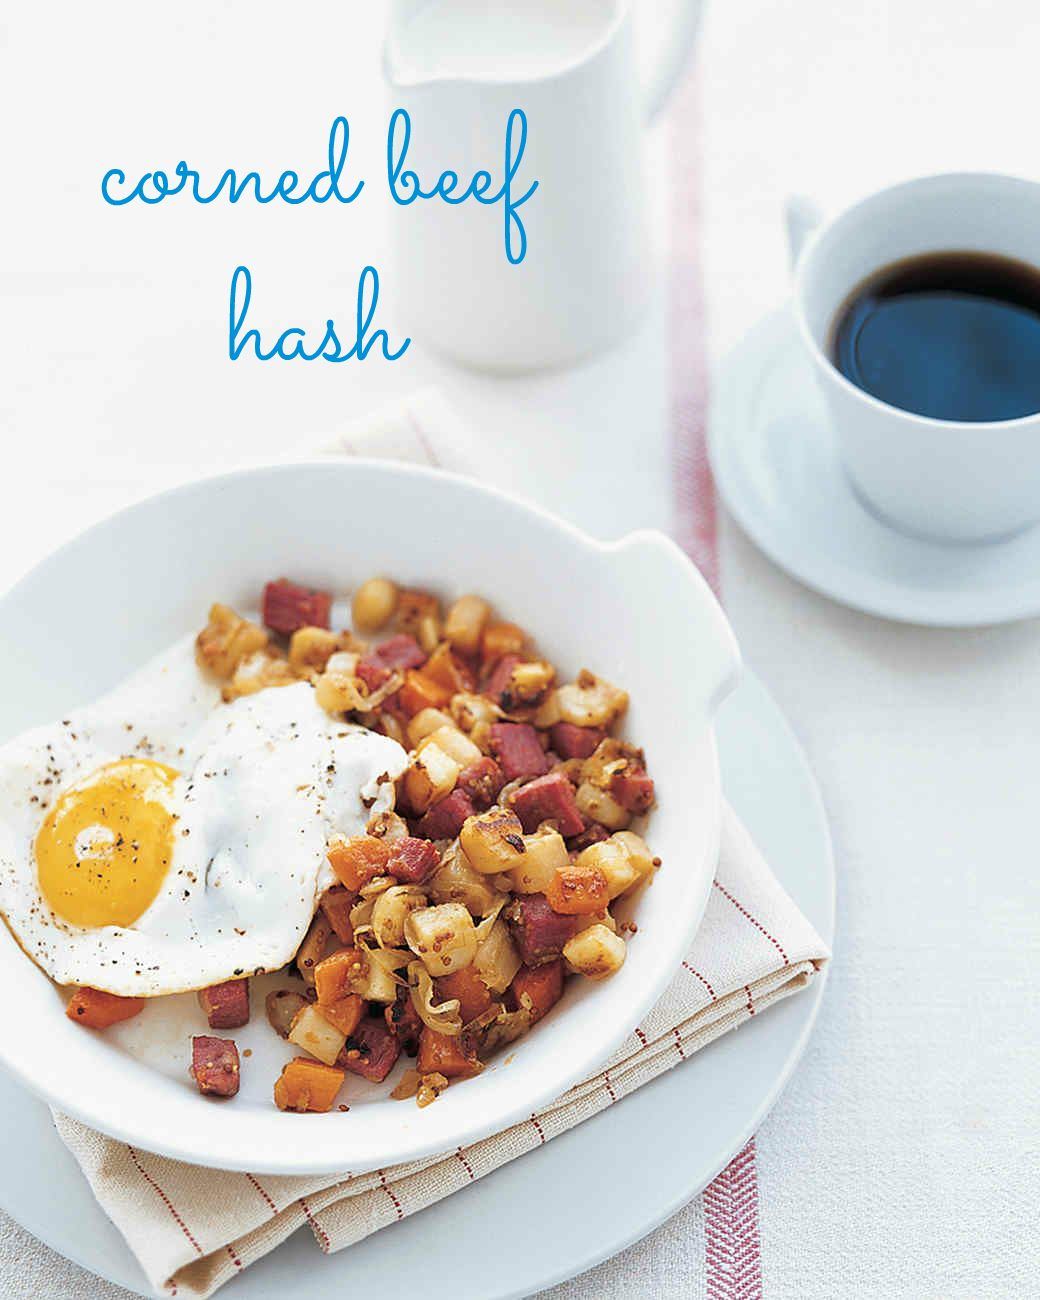 St Patrick S Day Breakfast She Brooke: Our Best Corned Beef And Cabbage Recipes For St. Patrick's